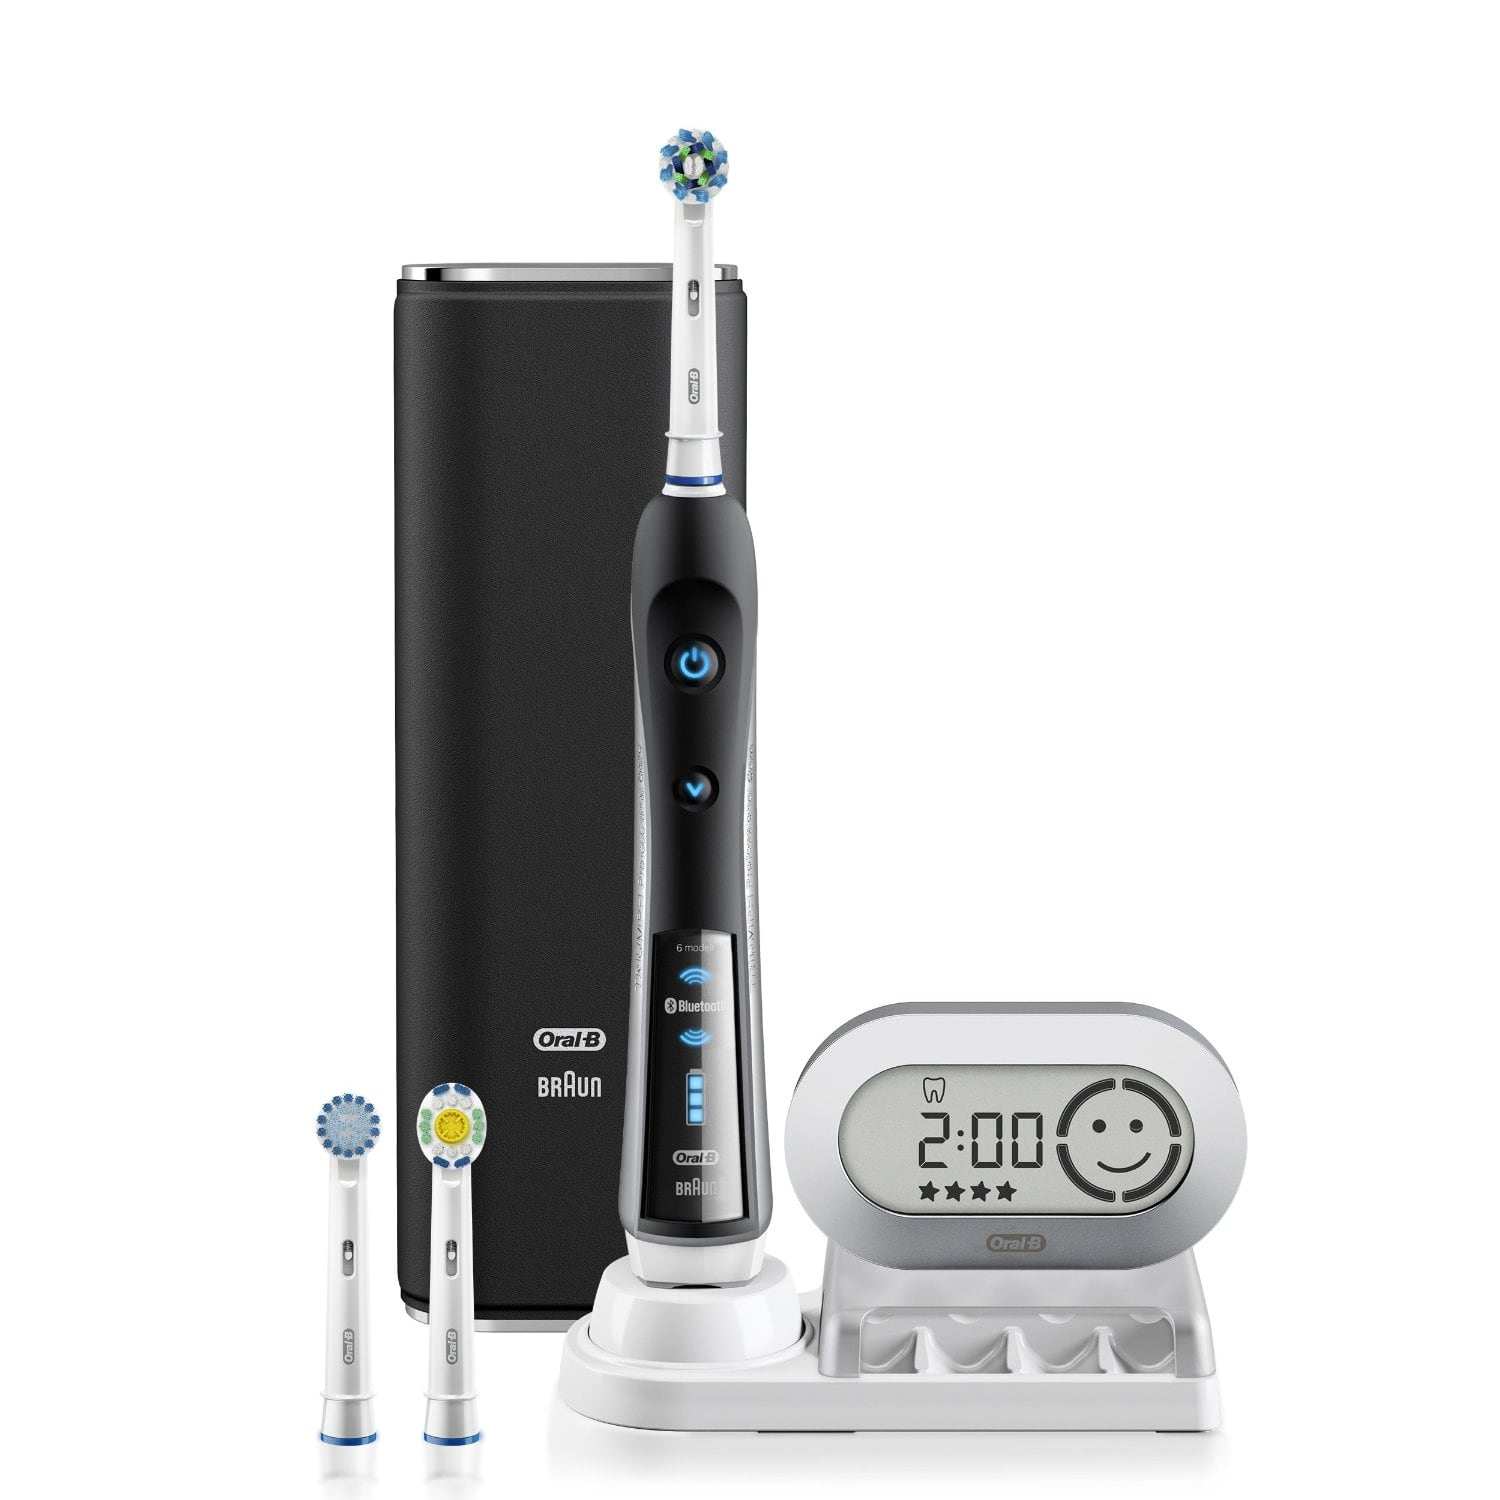 Oral-B 7000 SmartSeries Electric Rechargeable Toothbrush w/ Bluetooth  $90 + Free Shipping